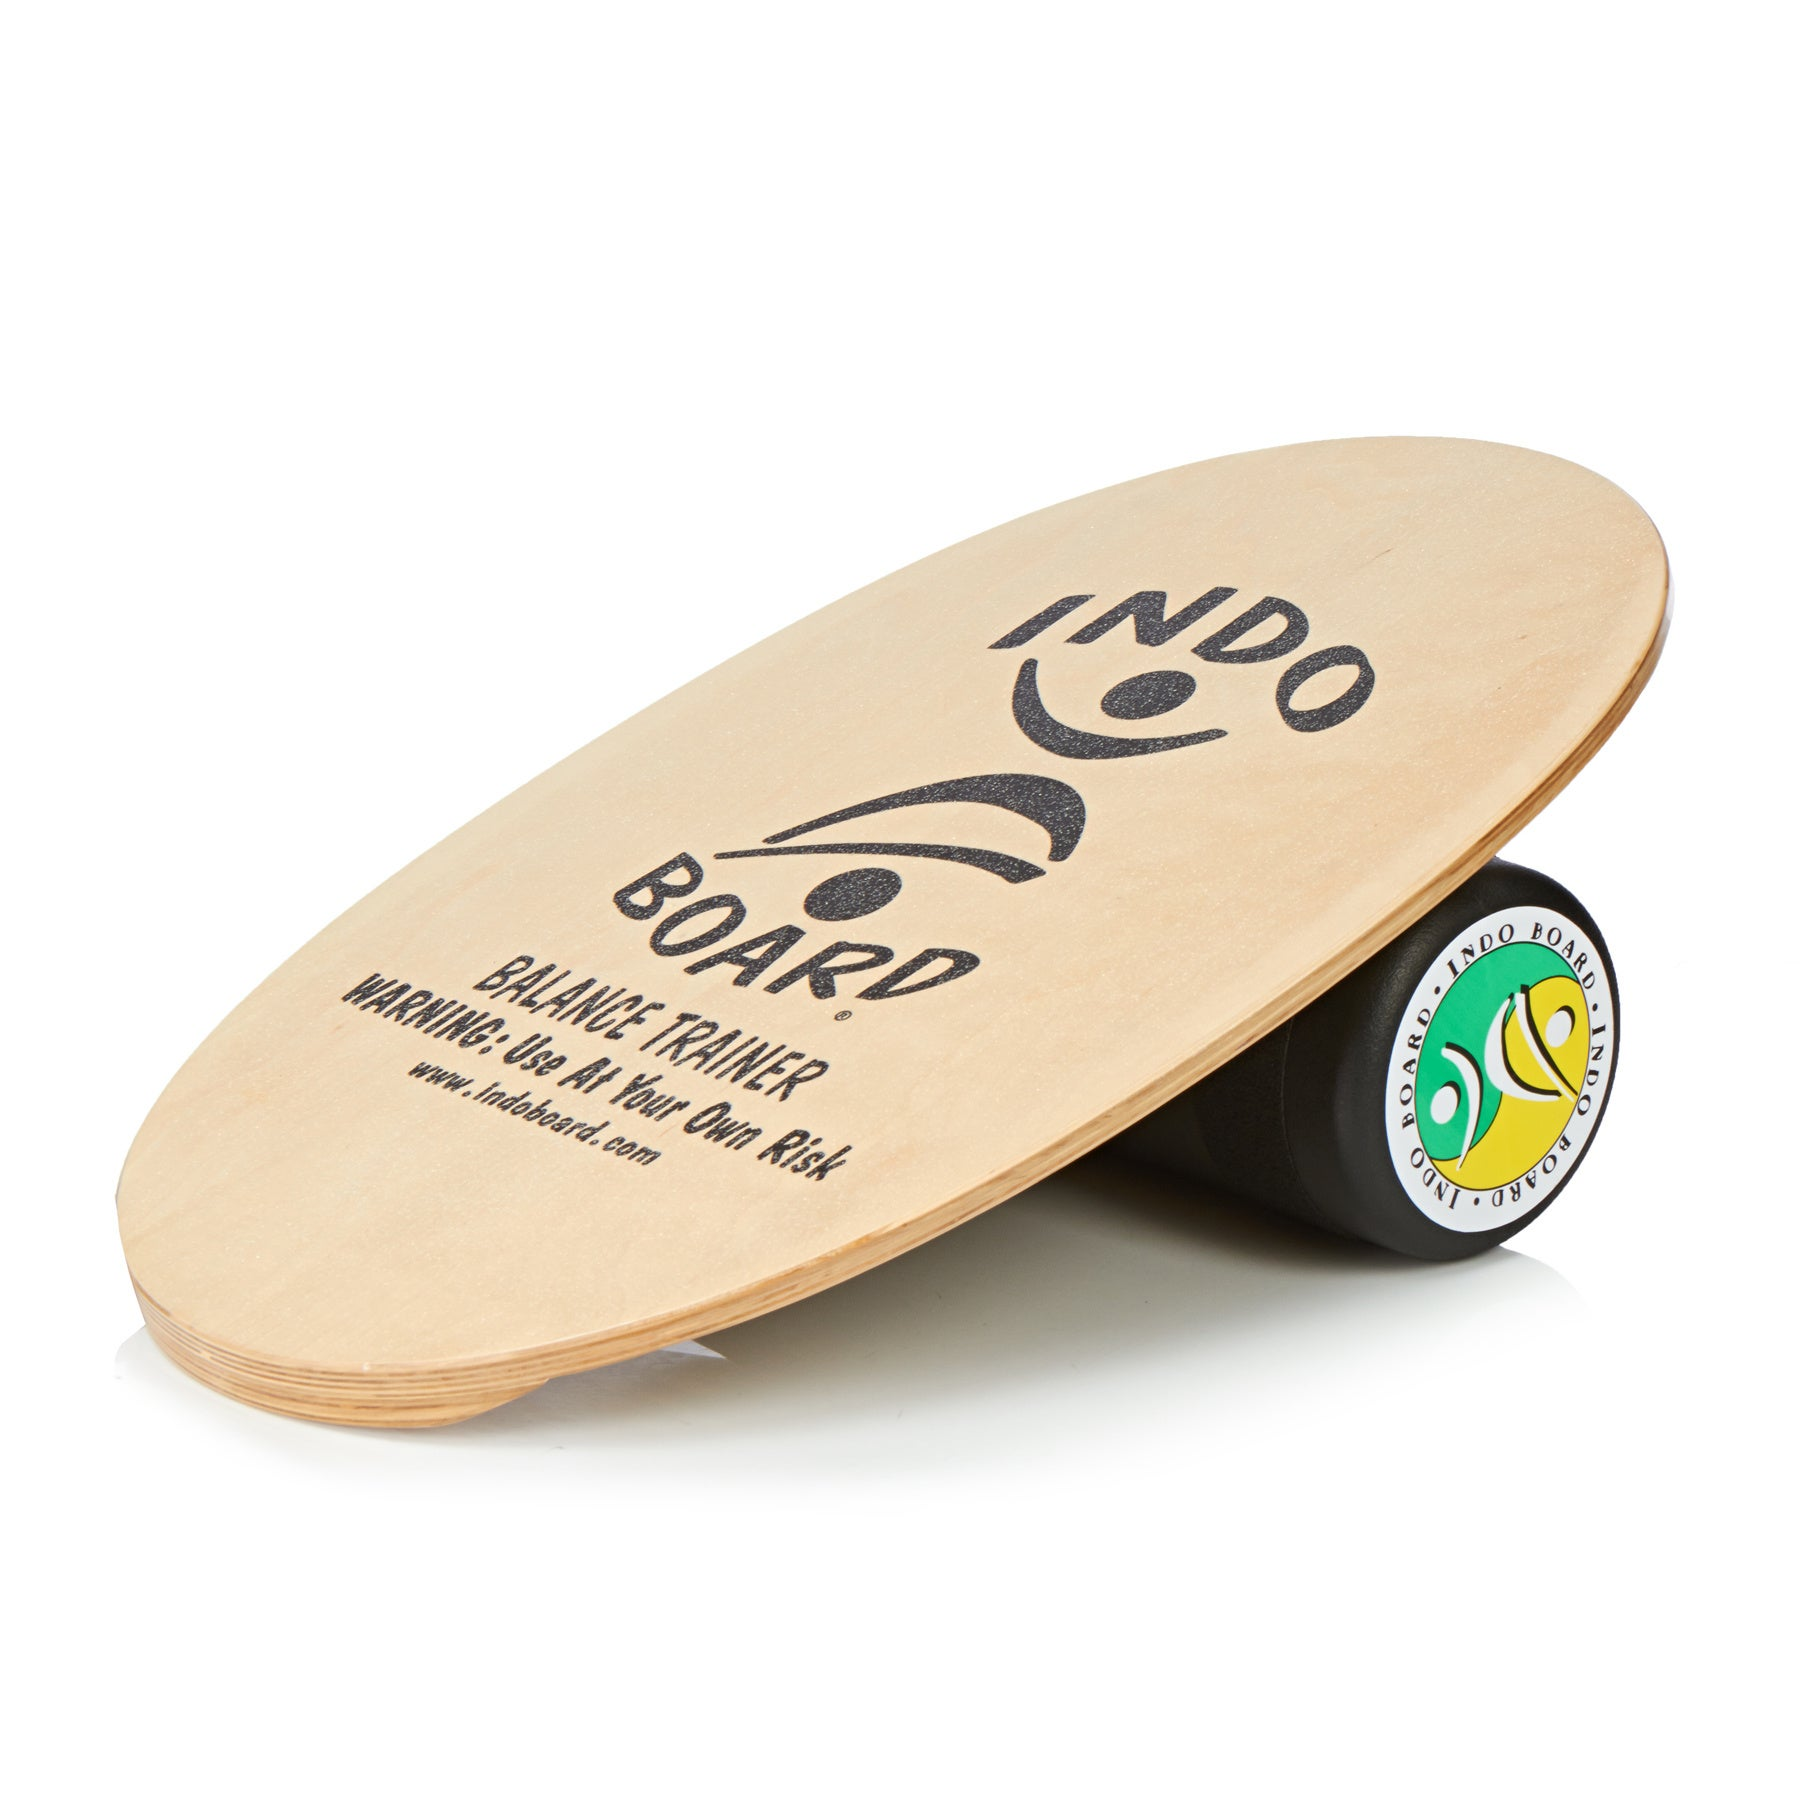 Balance Board Indo Boards Original Graphics Deck and Roller - Natural